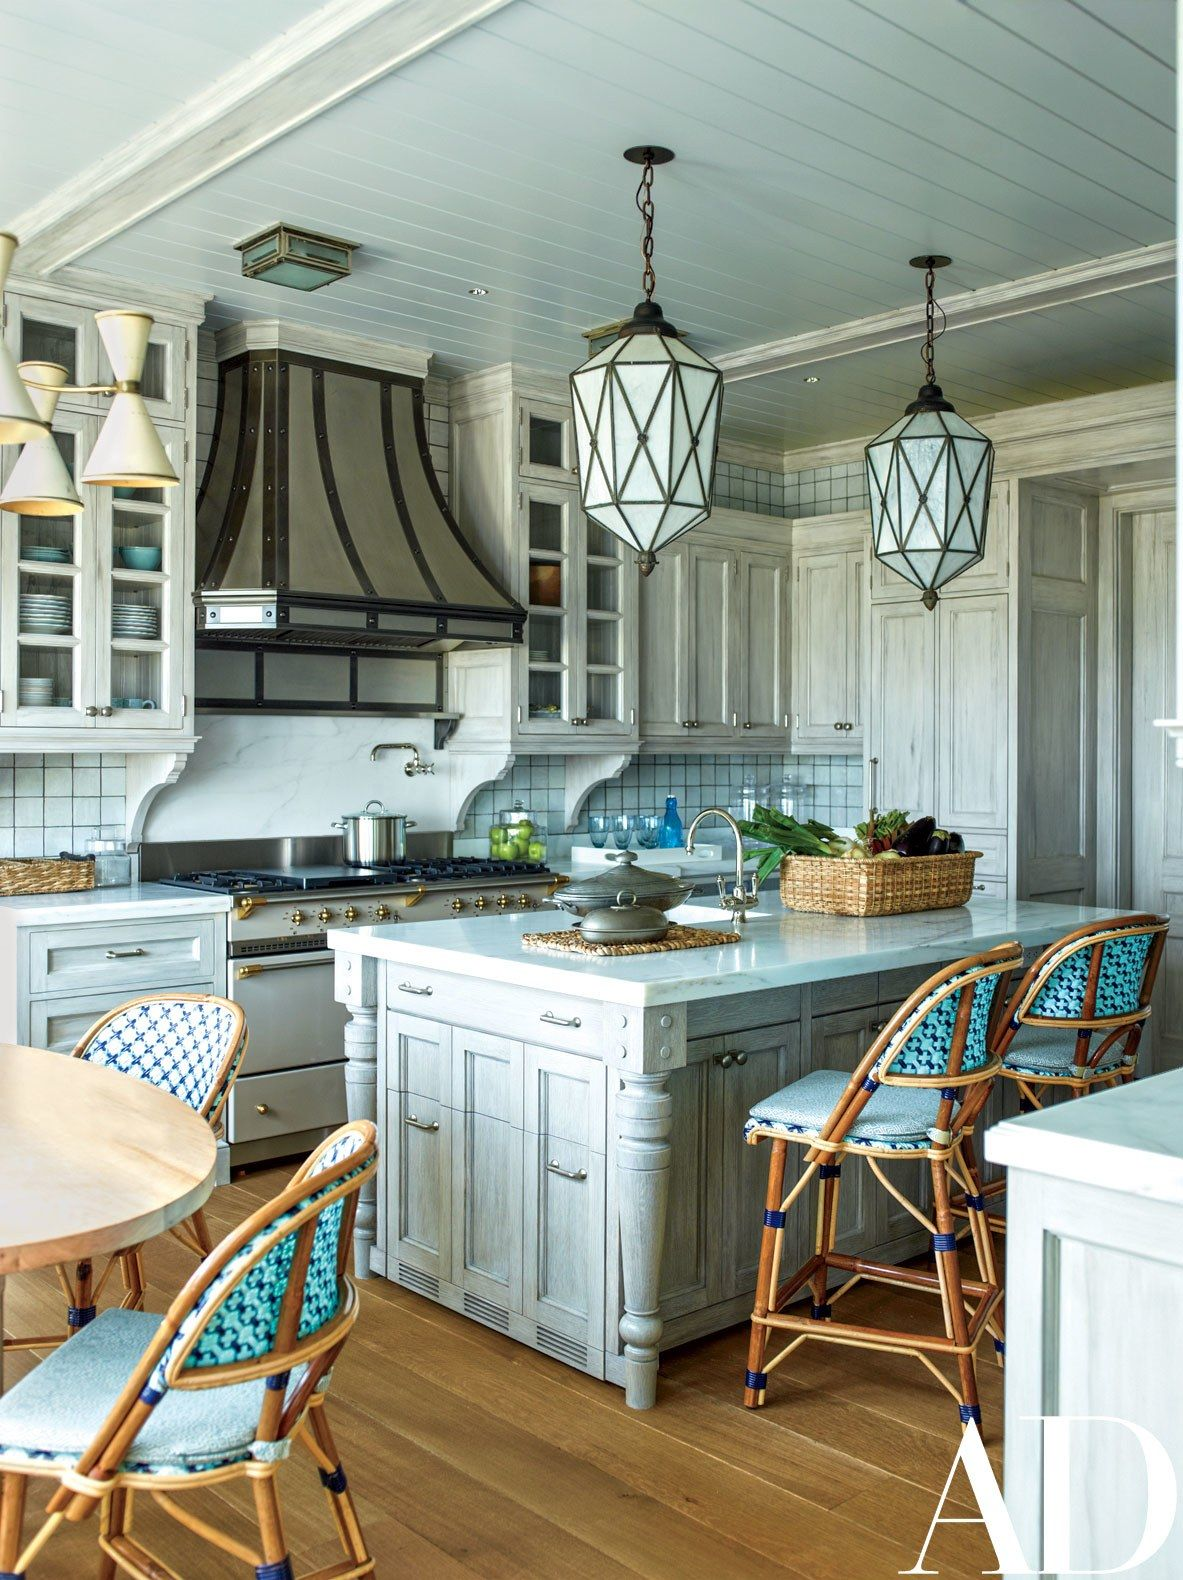 16 Farmhouse Kitchens with Undeniable Charm | Farmhouse kitchens ...